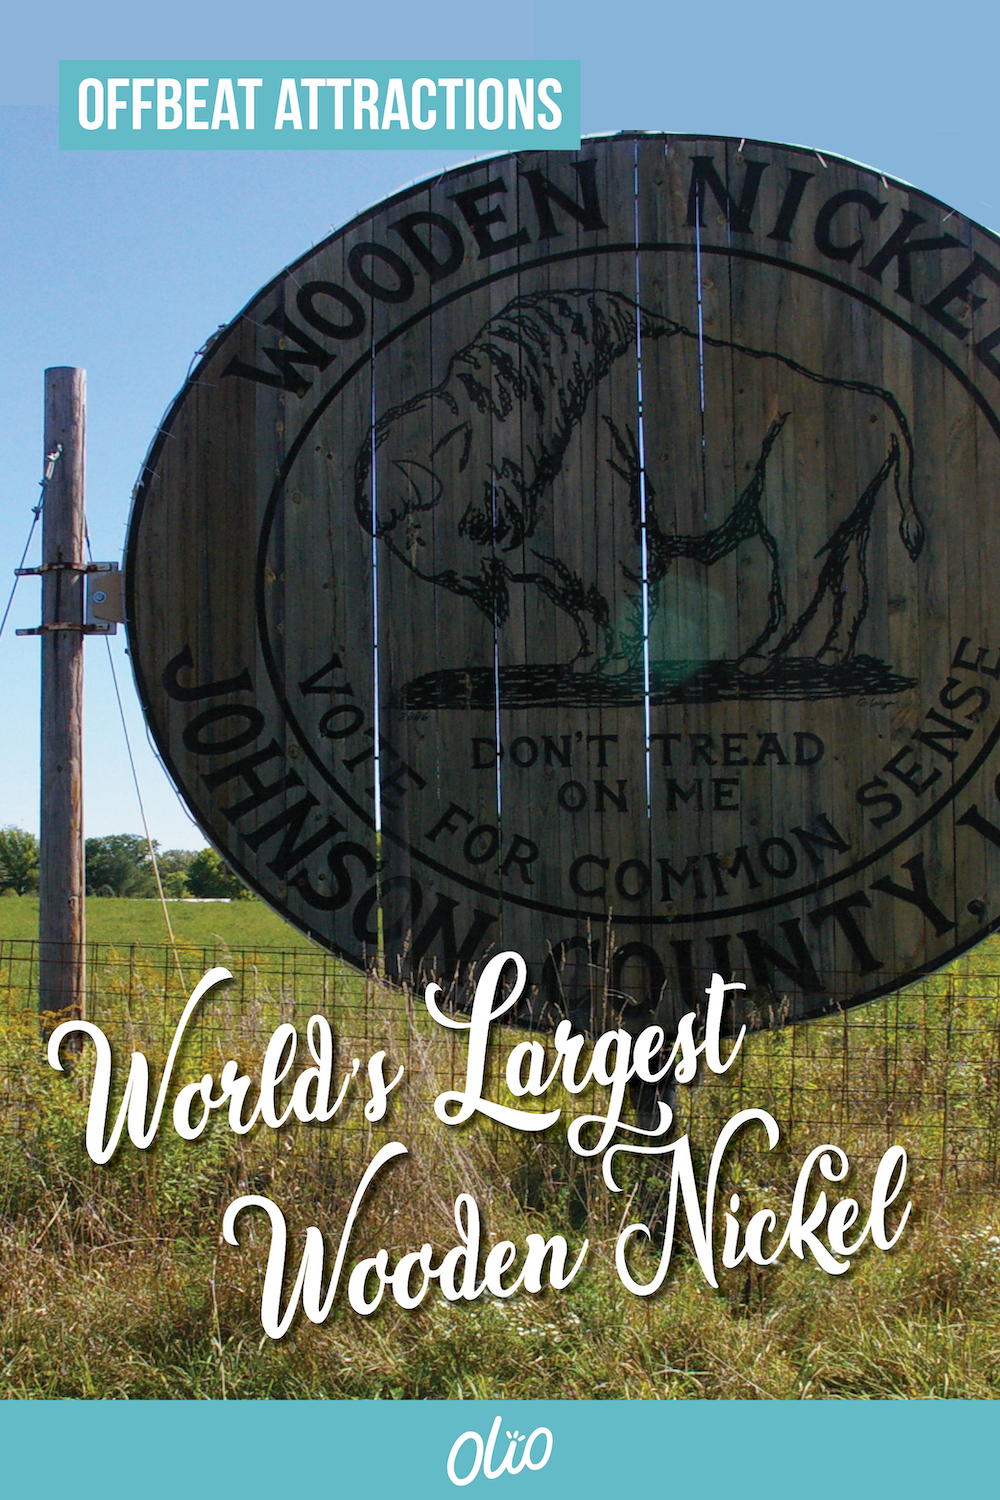 The next time you're near Iowa City, Iowa, swing by the World's Largest Wooden Nickel! This offbeat attraction is the perfect photo opp for any Midwest road trip. #Iowa #RoadsideAttraction